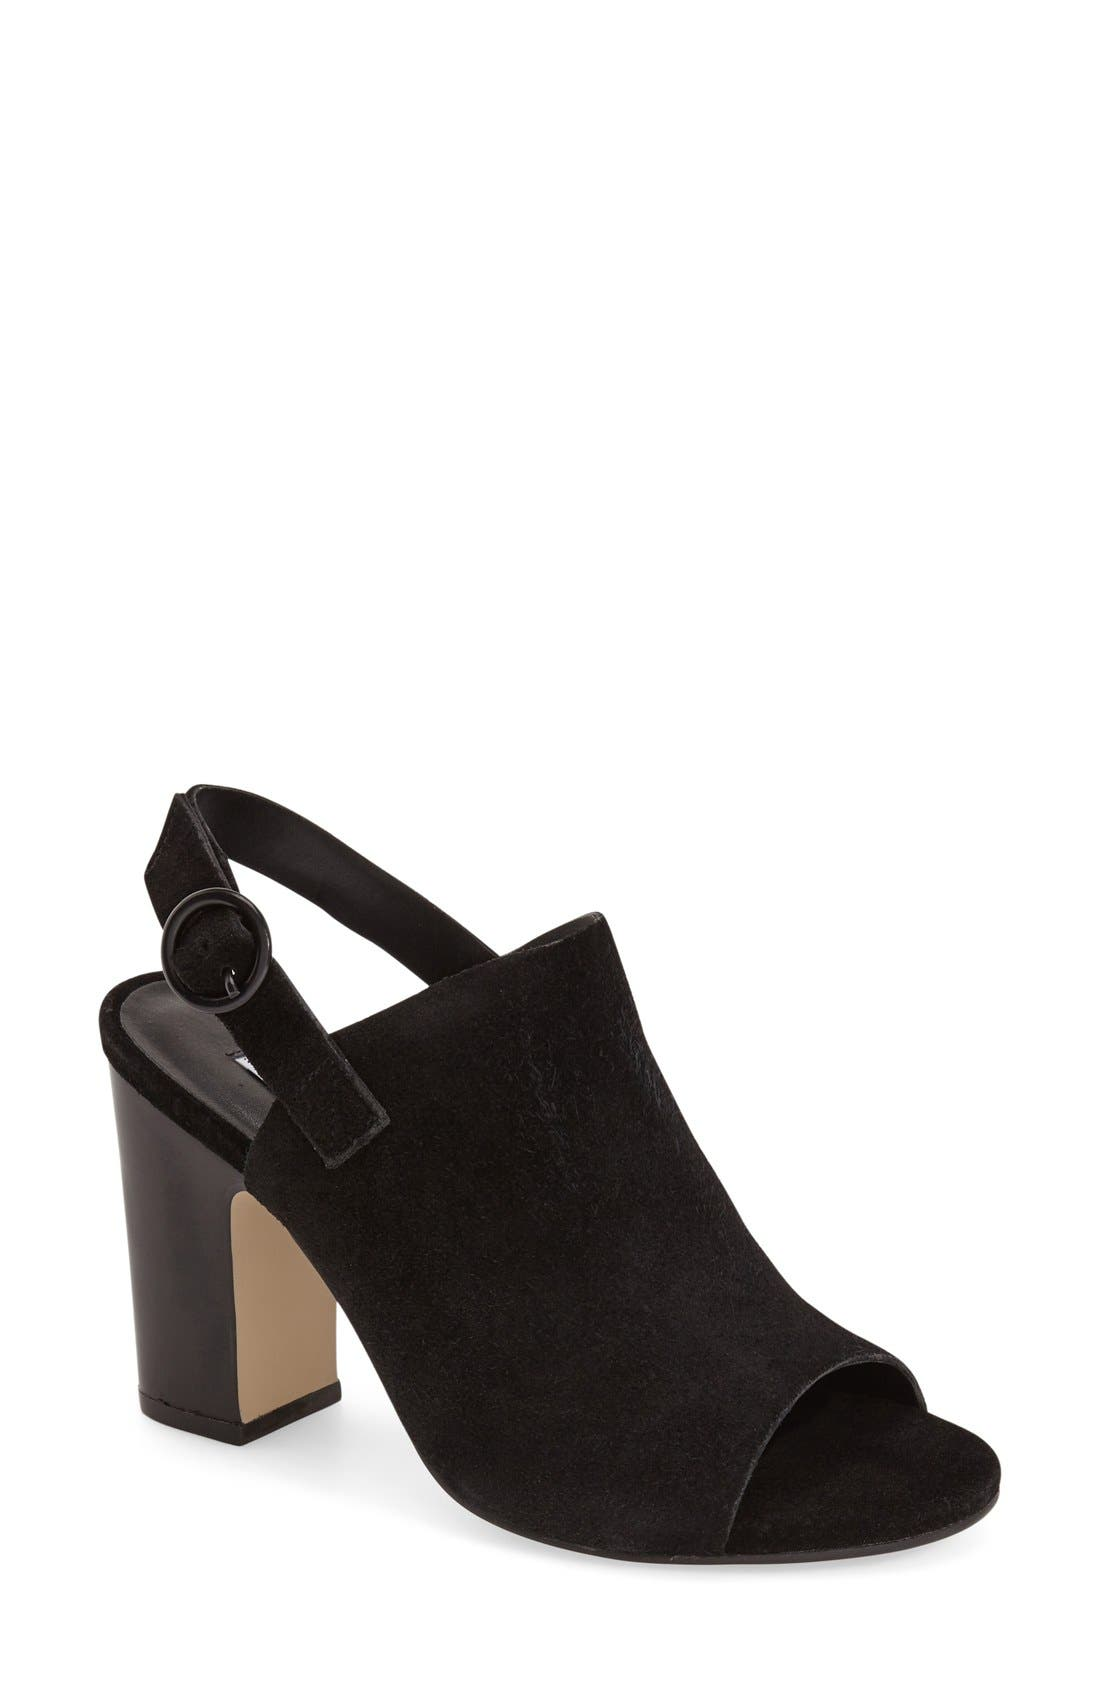 Alternate Image 1 Selected - Dune London 'Janni' Bootie (Women)